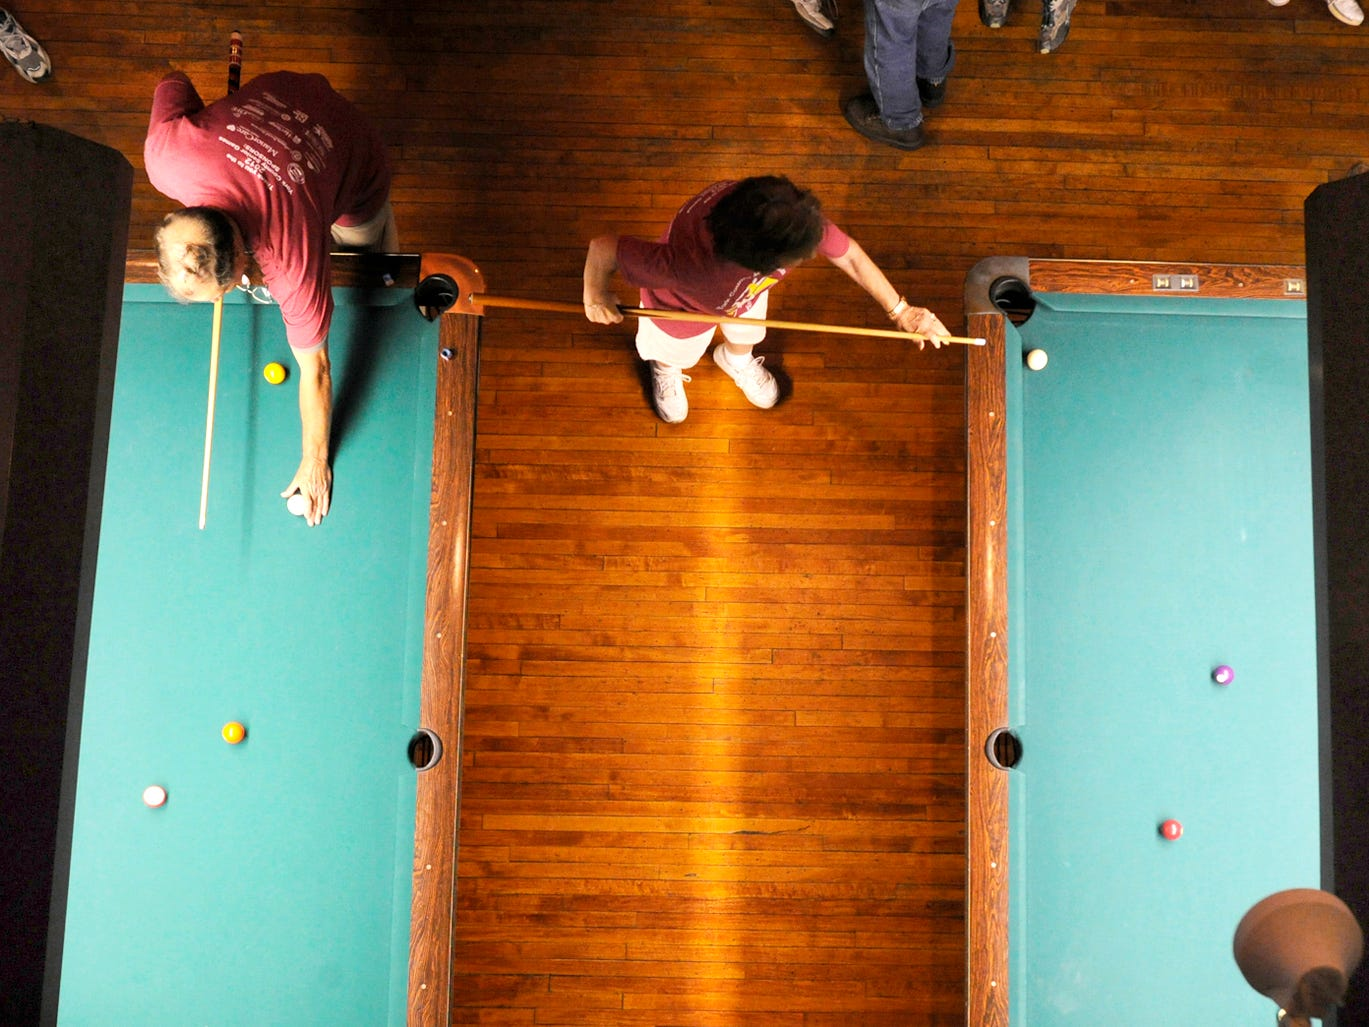 Terry Reinhard, left, of Shiloh and Toni Stankiewicz of Dallastown, practice before the start of the billiards tournament at the York County Senior Games at Cobblestones on June 18, 2012.